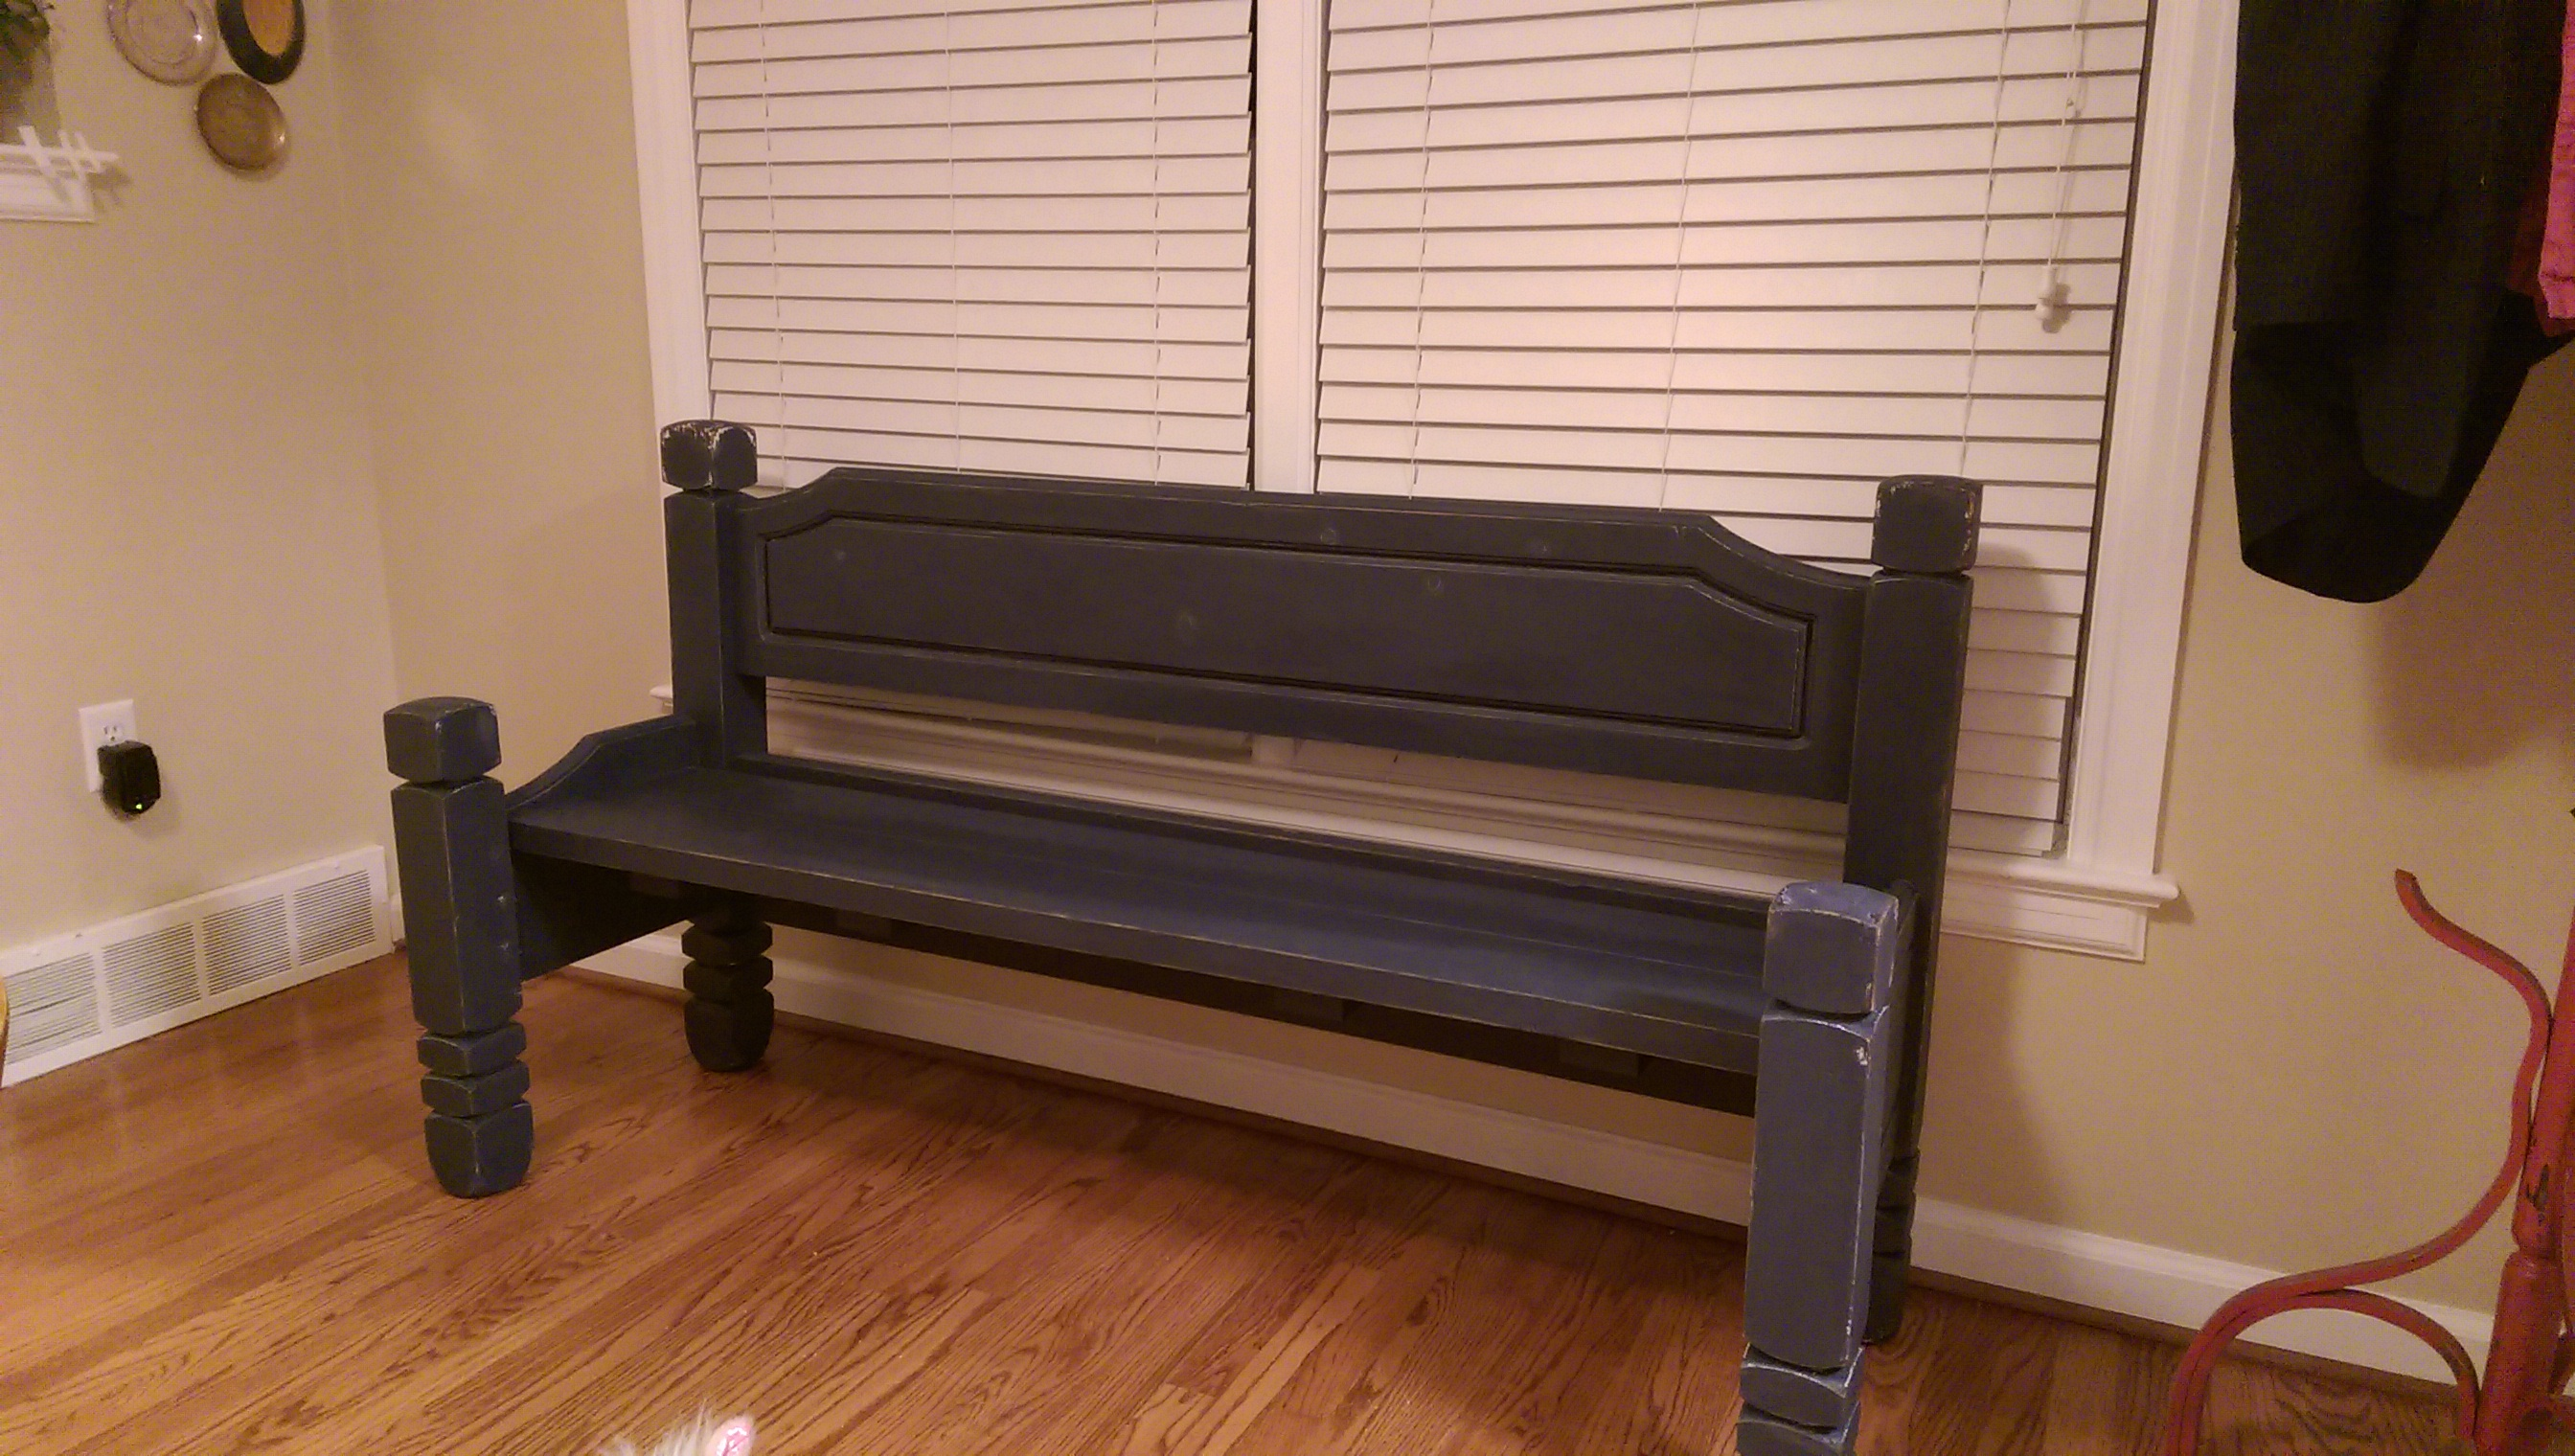 A bench from an old bed